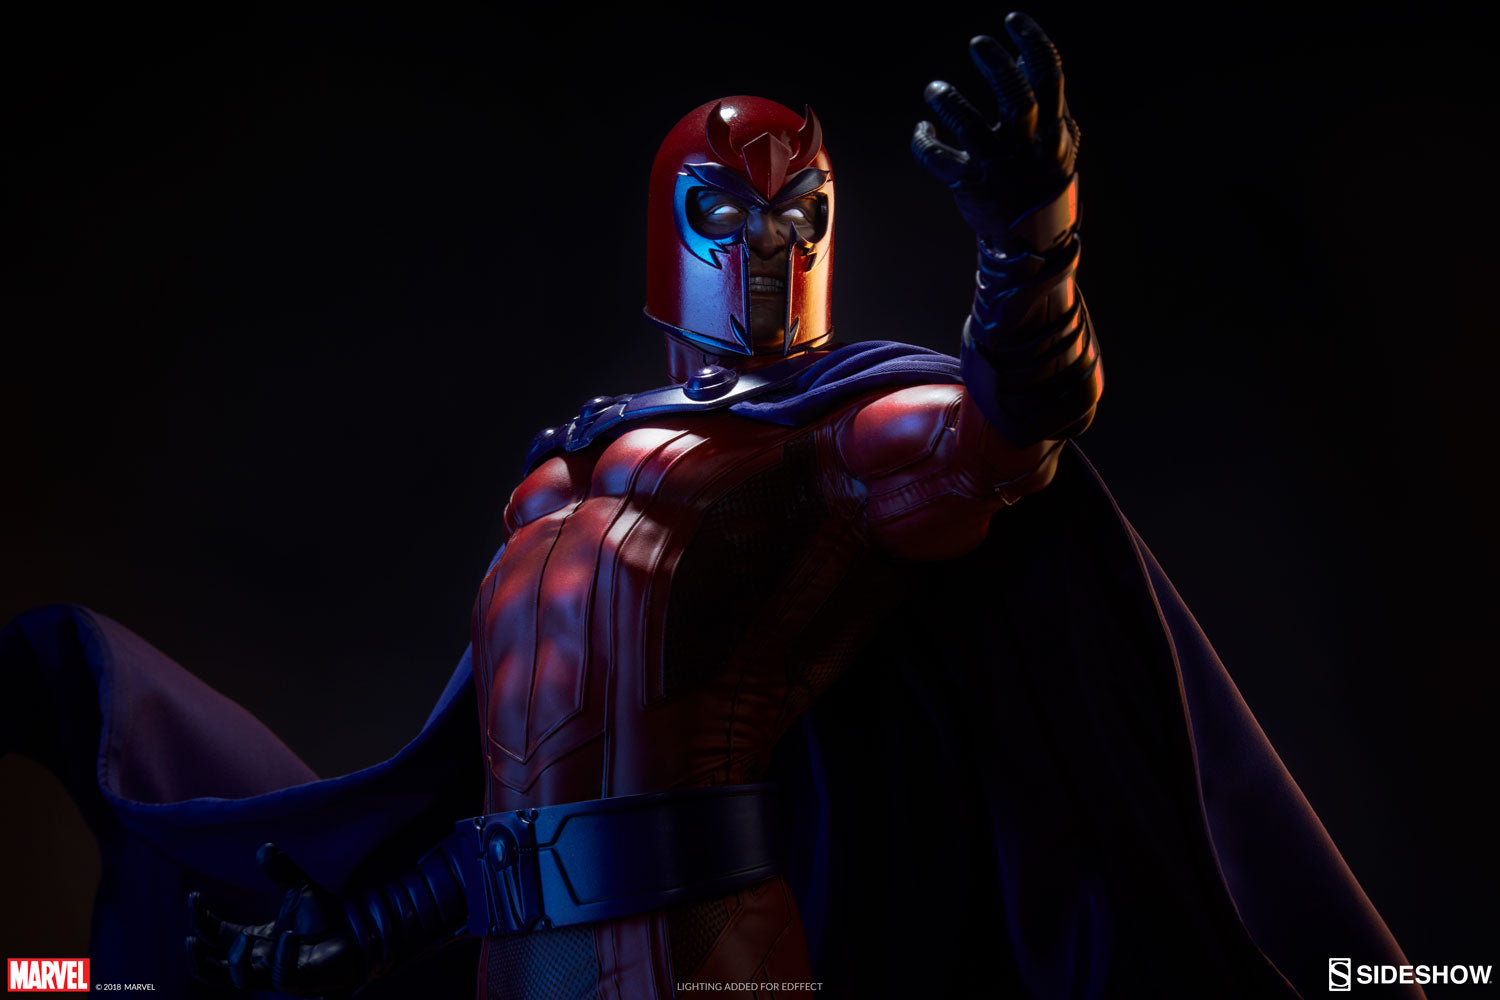 Sideshow Collectibles - Magneto Maquette